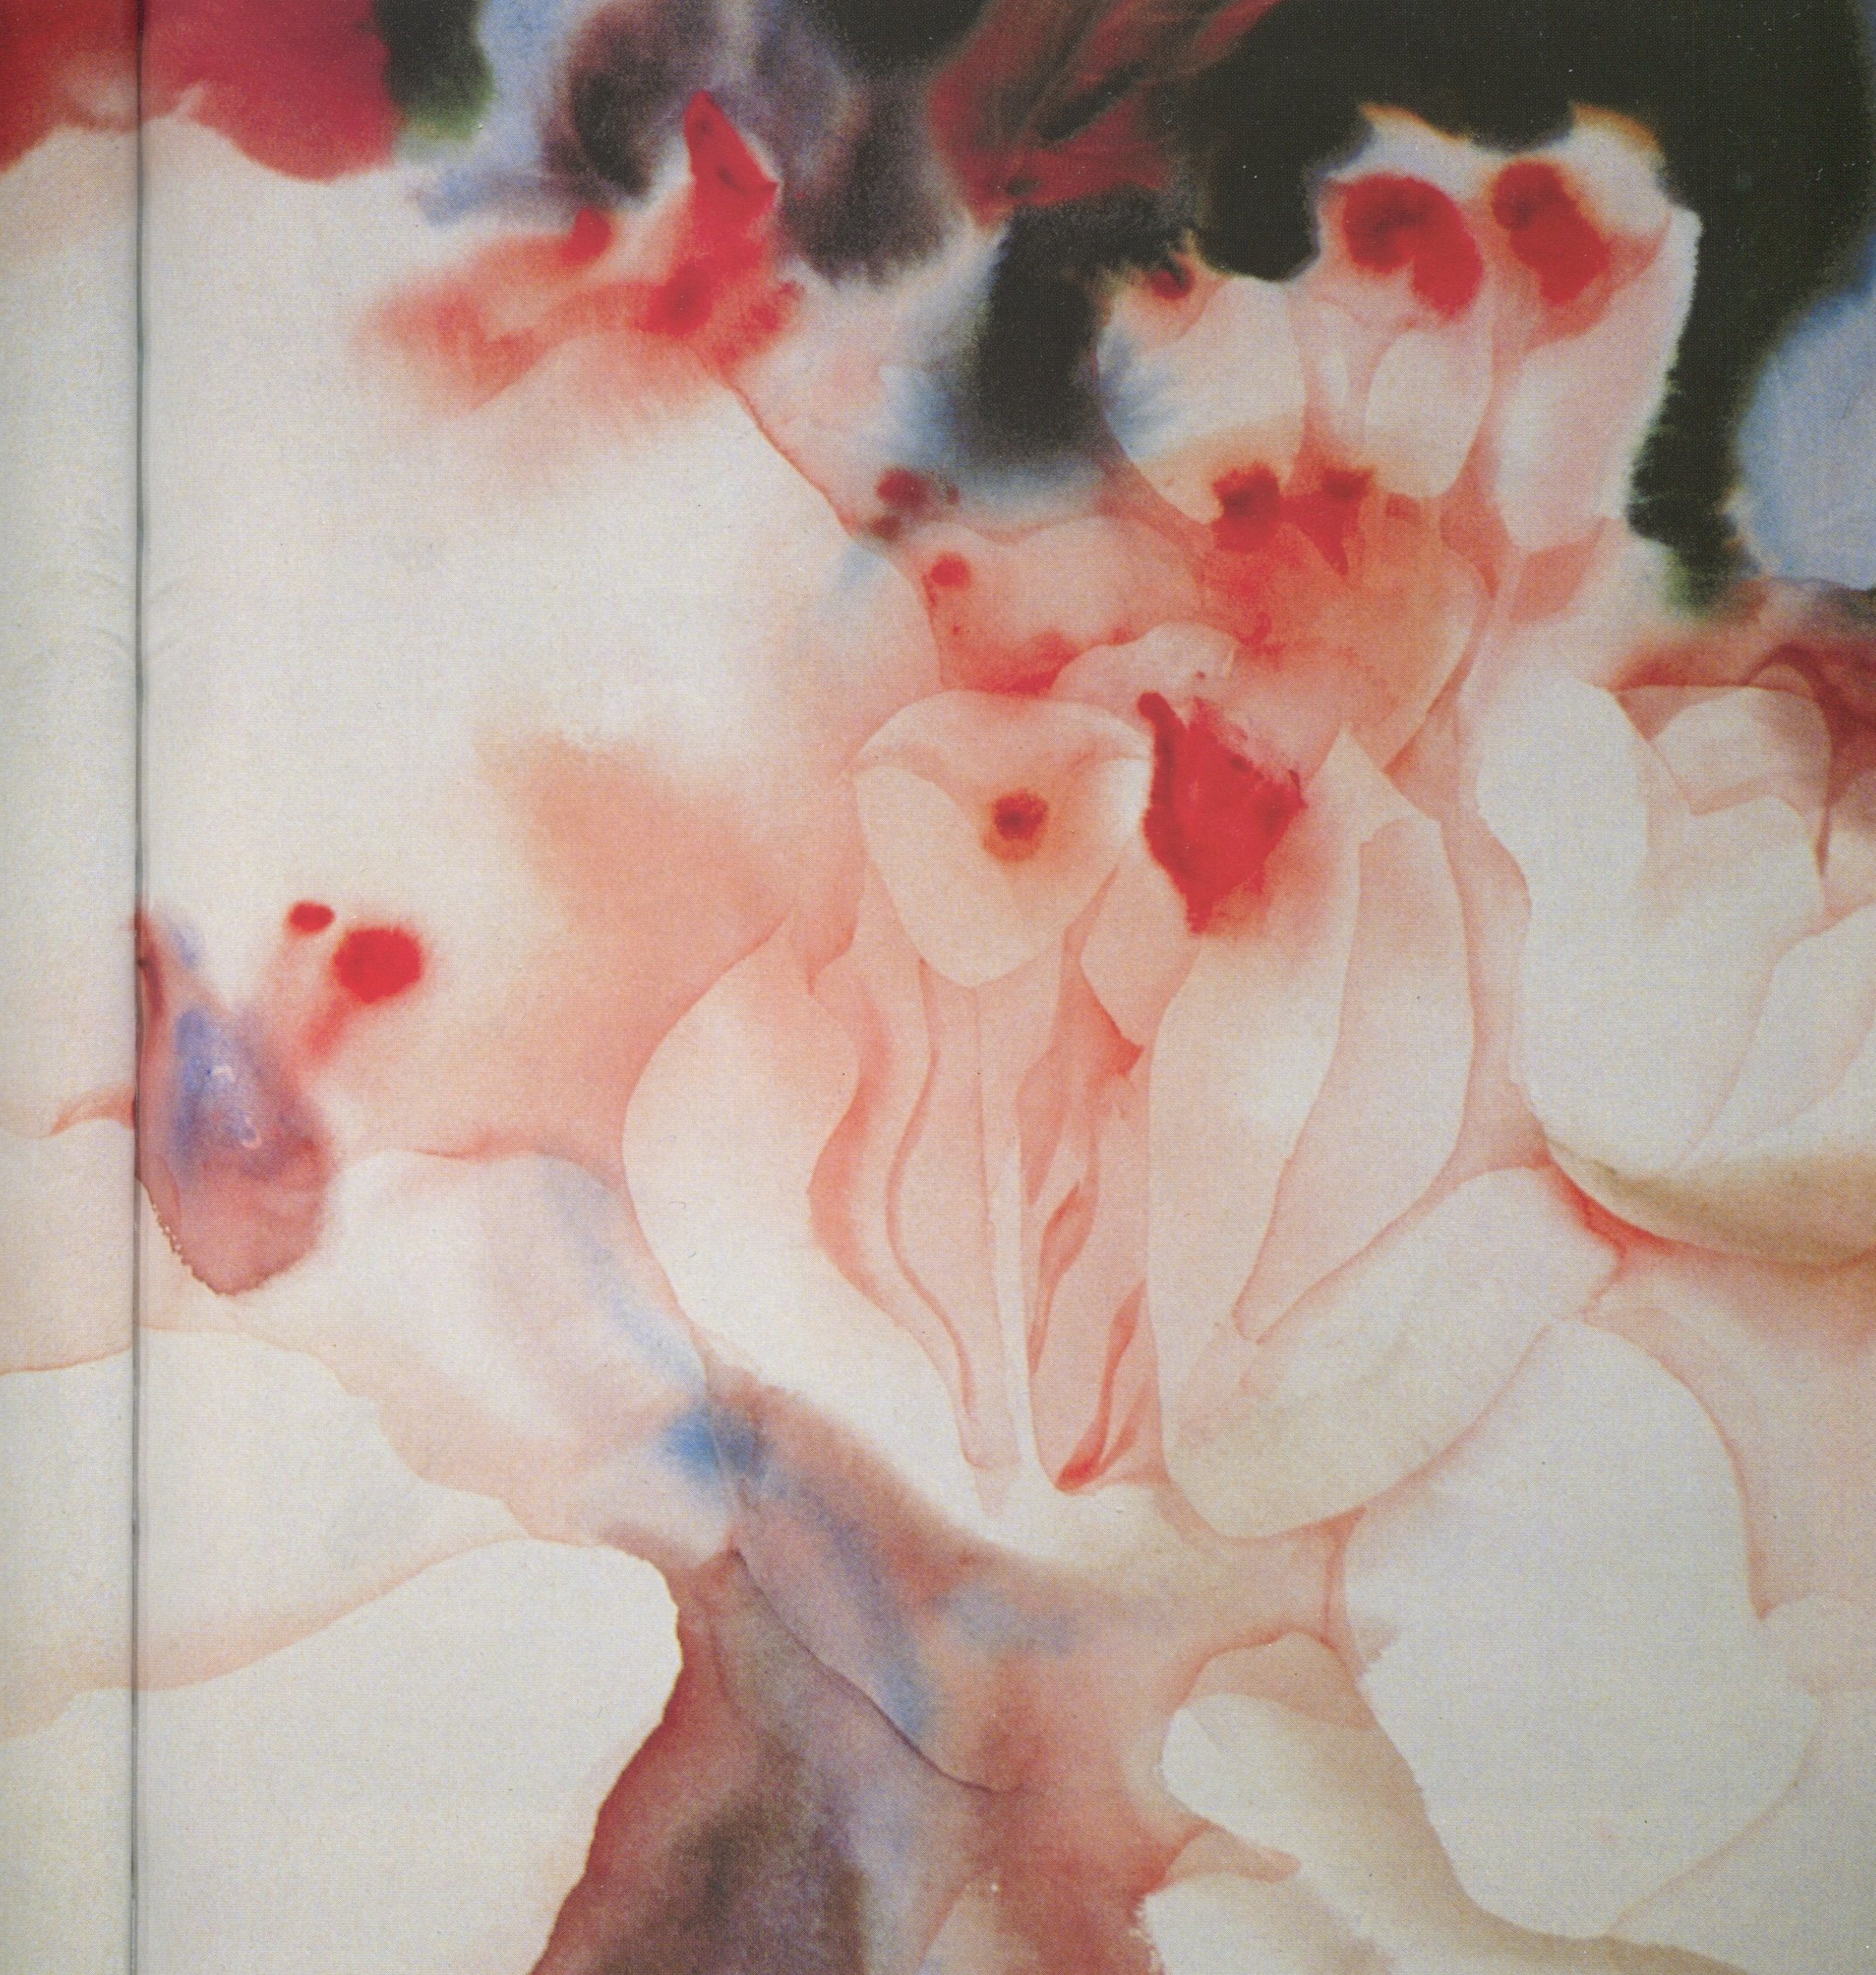 """Nechis calls this painting """"Genesis,"""" and says of its creative process: """"Small flowers appear to spring from the large one. I made the flower centers with spurts of wet paint on wet paper, then let it dry. Next I added glazes for hard edges that would sharpen the image."""" -"""